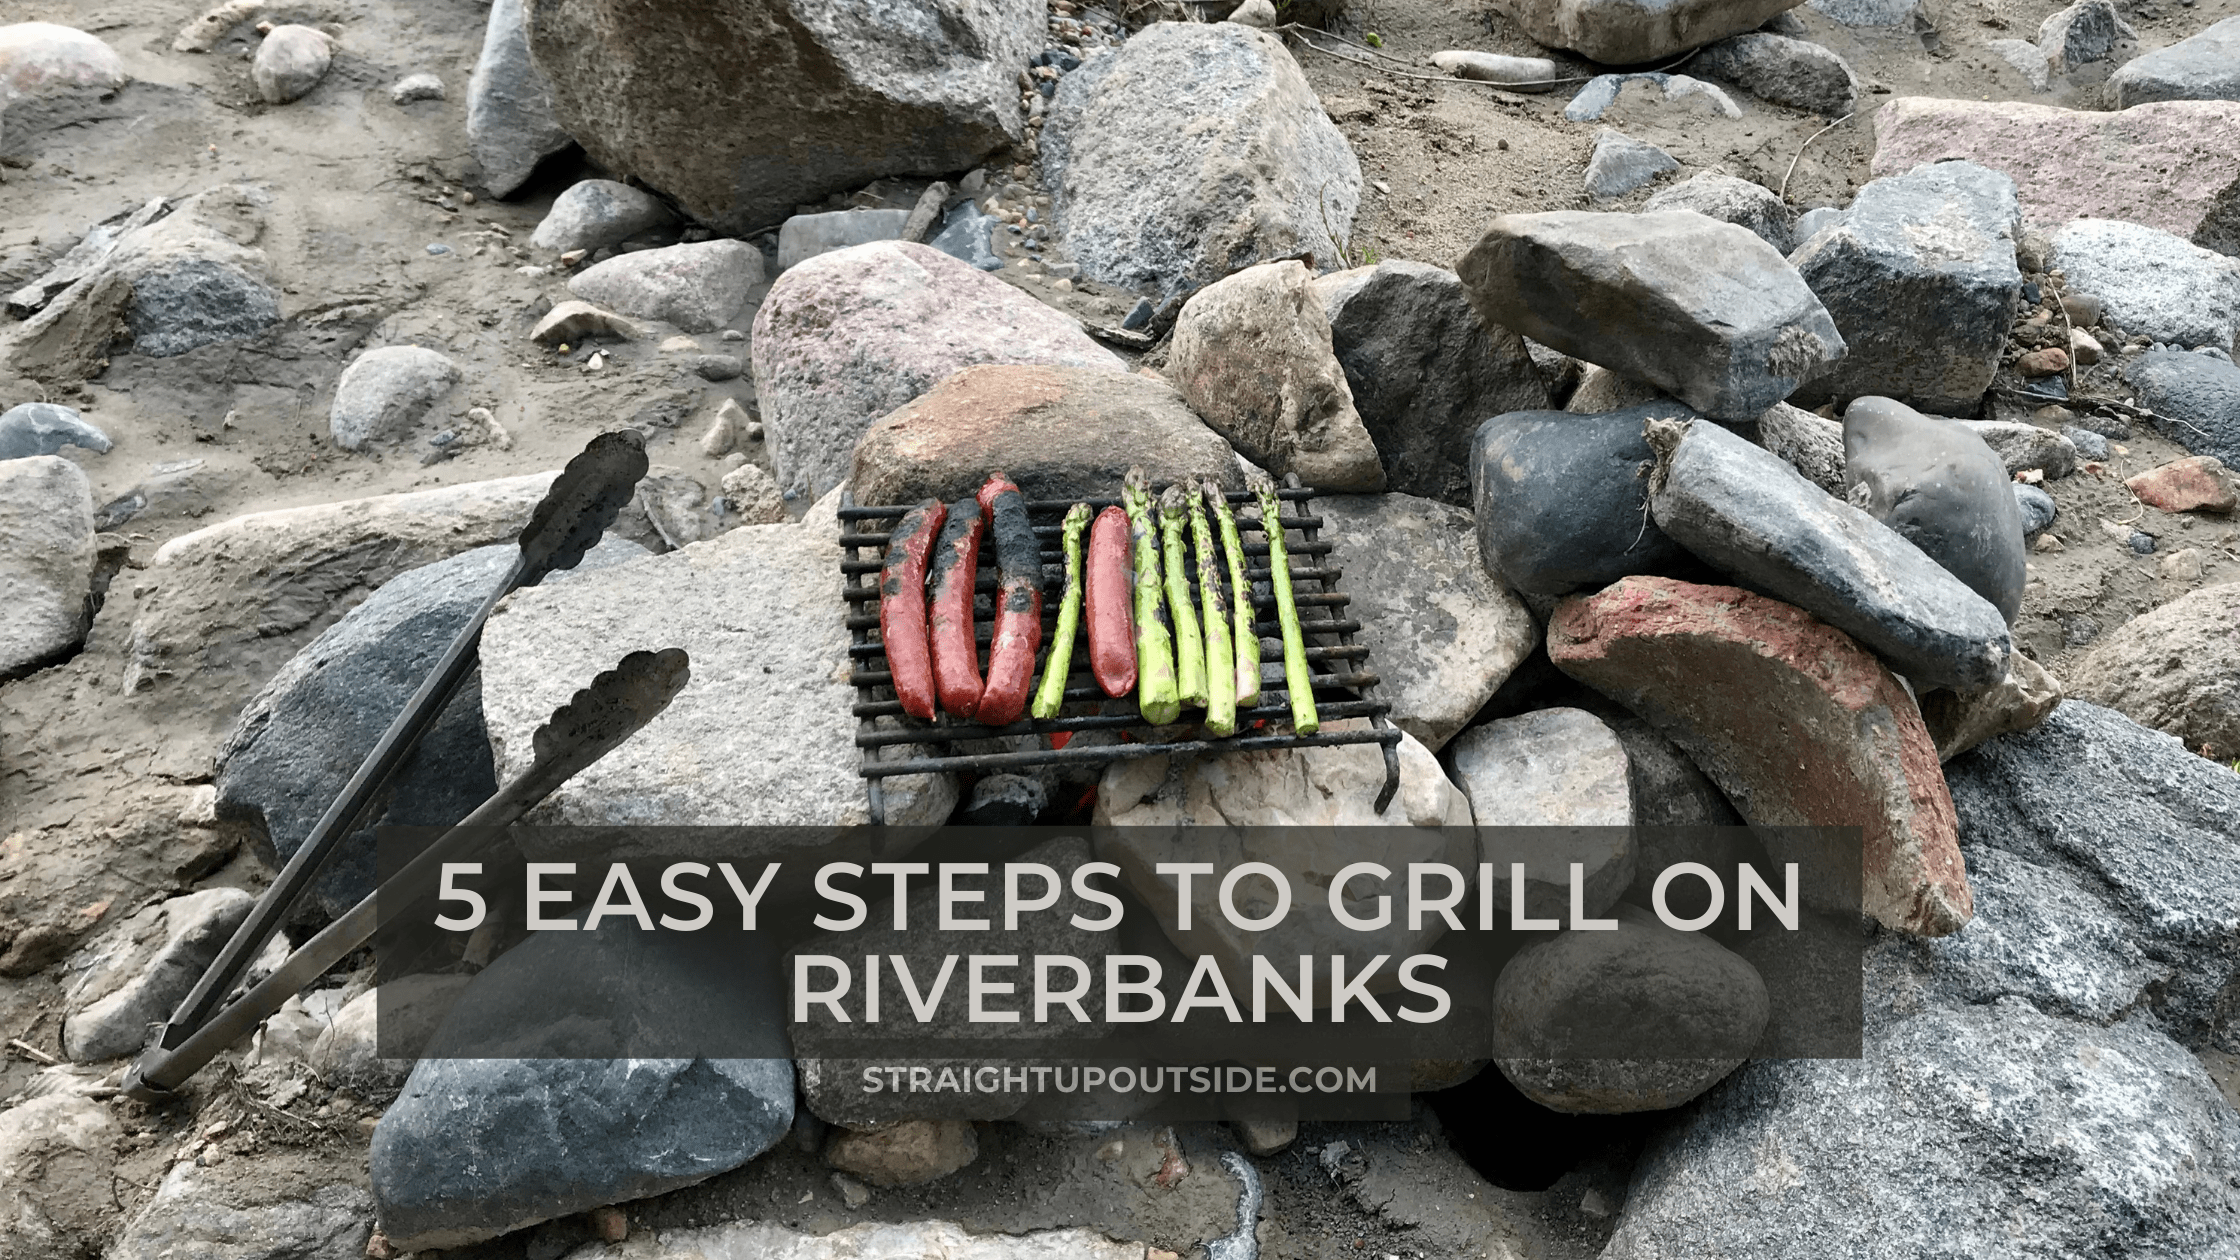 5 Easy Steps to Grill on Riverbanks